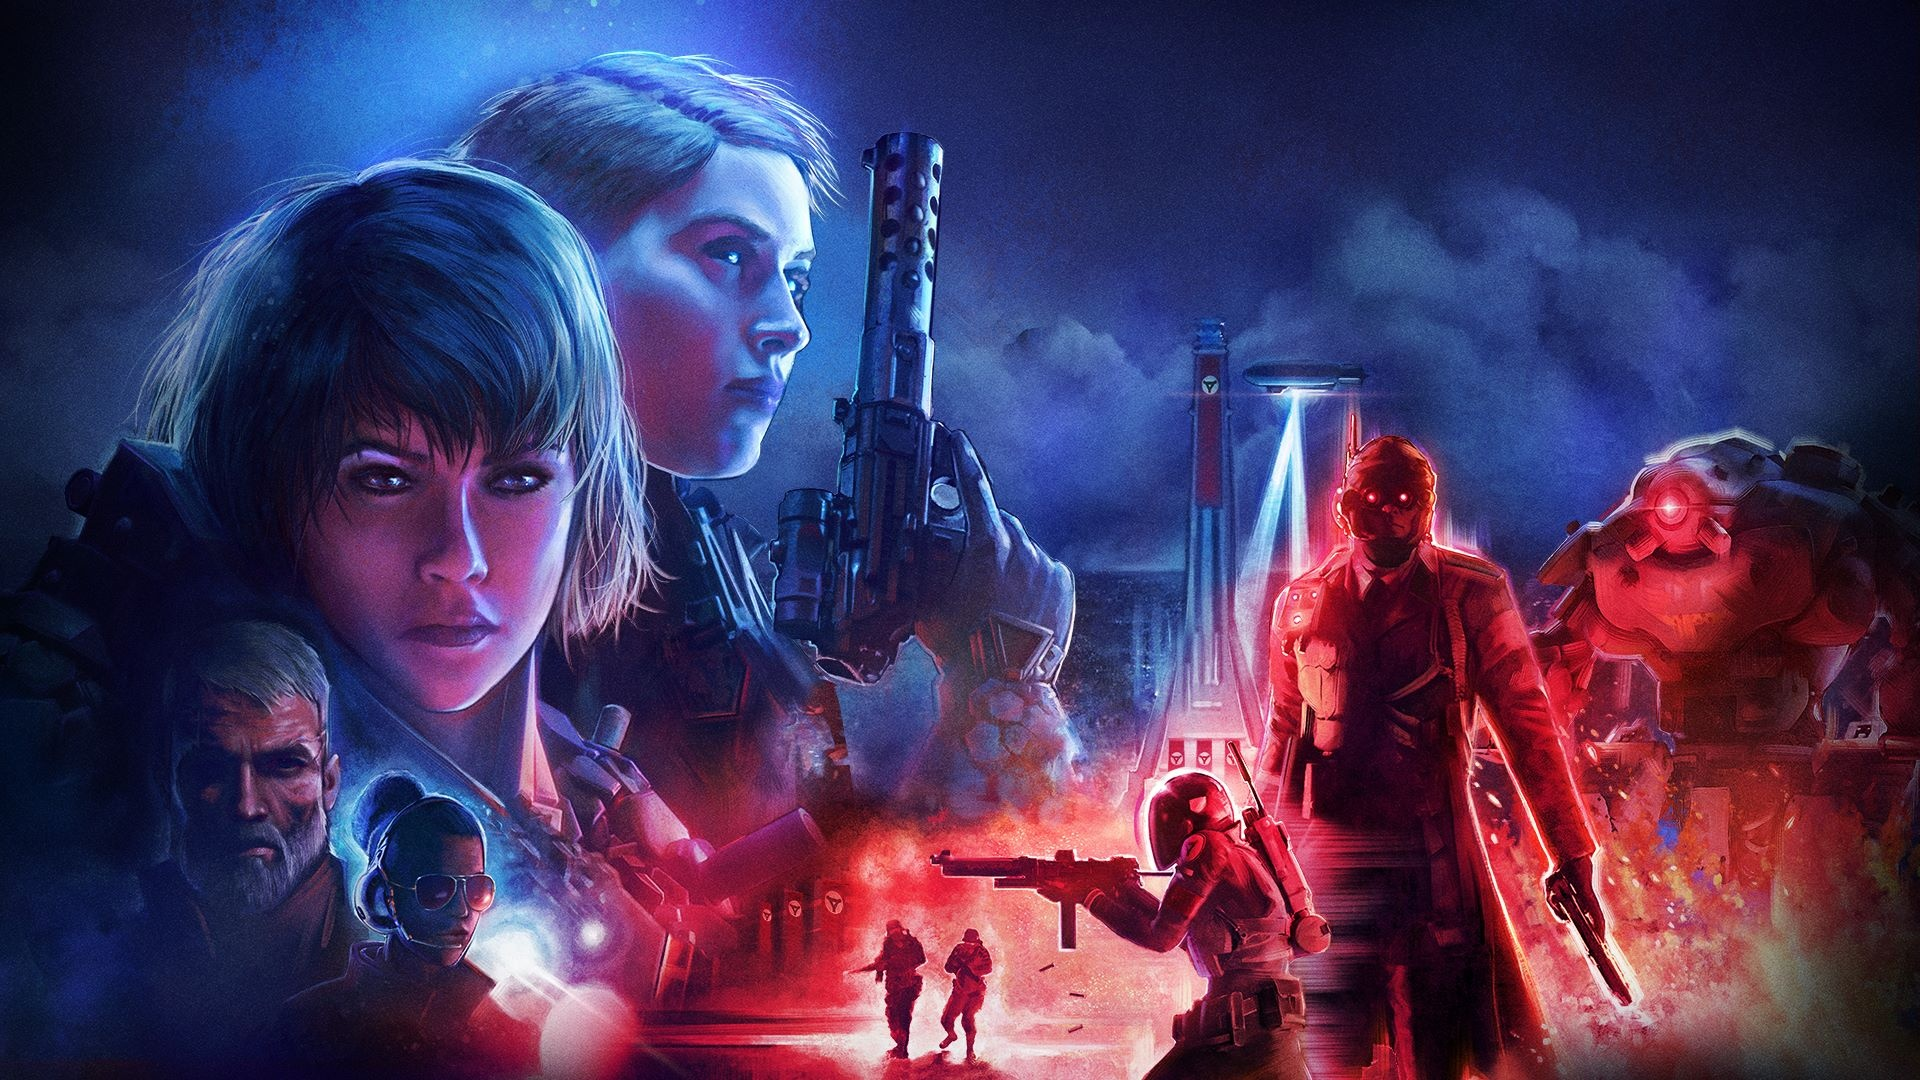 These Upcoming Ps4 Games of 2019 are going to Keep You on The Edge